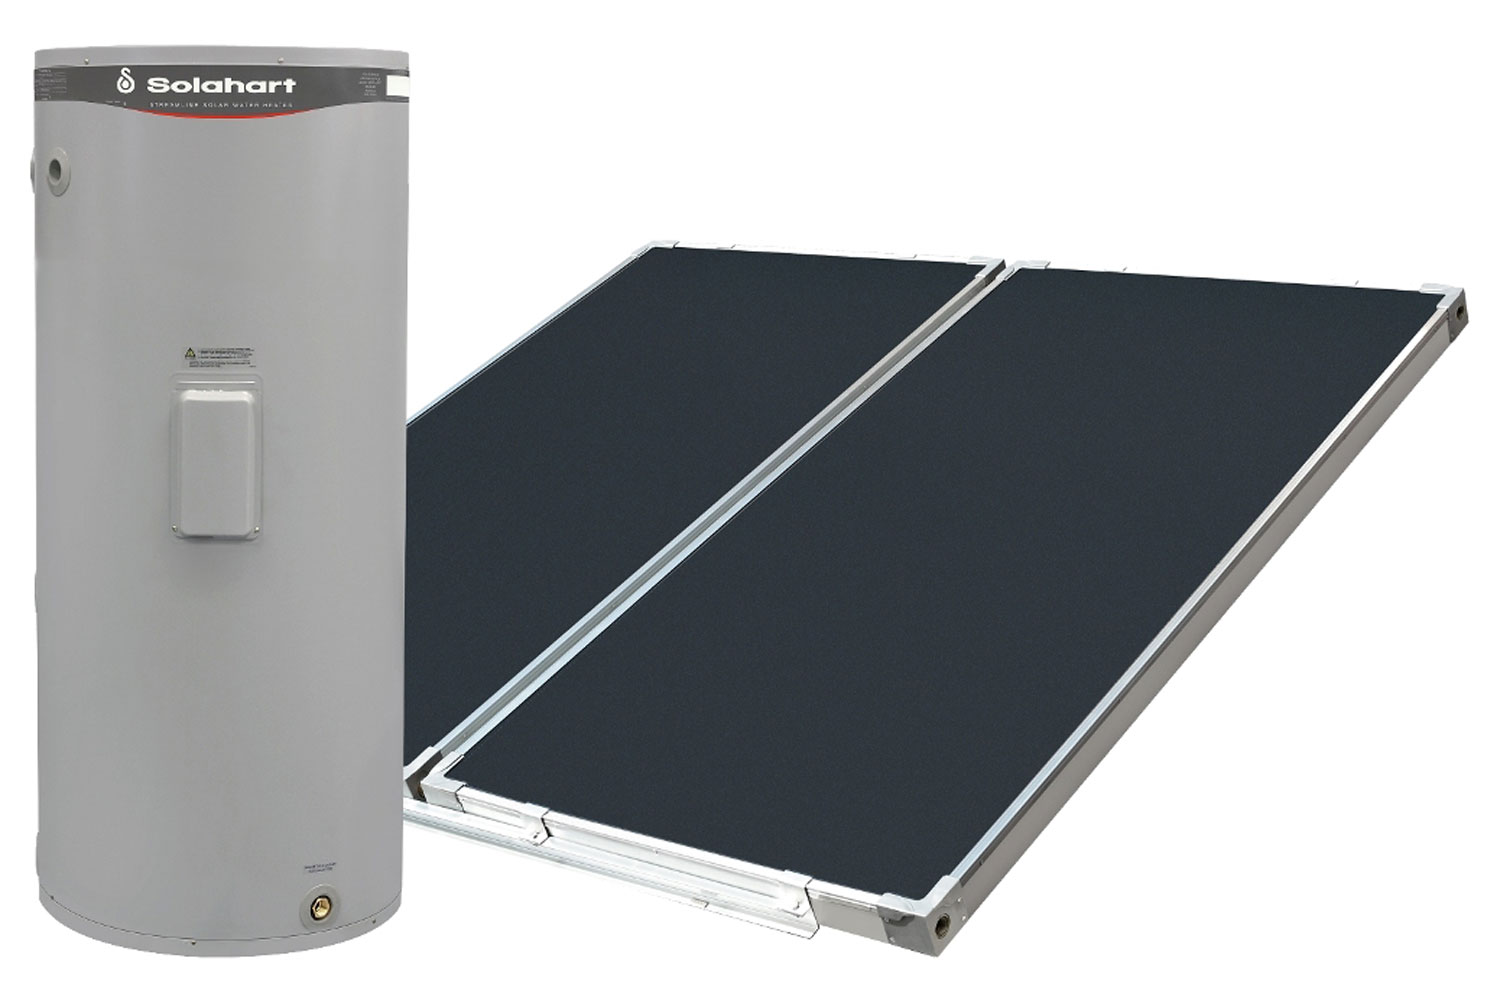 Solahart Split Solar Hot Water System Heater Diagram Free Collection Of Pictures The Solaharts Heaters Are Designed To Give You Maximum Flexibility Installation Locations Low Profile And Unobtrusive